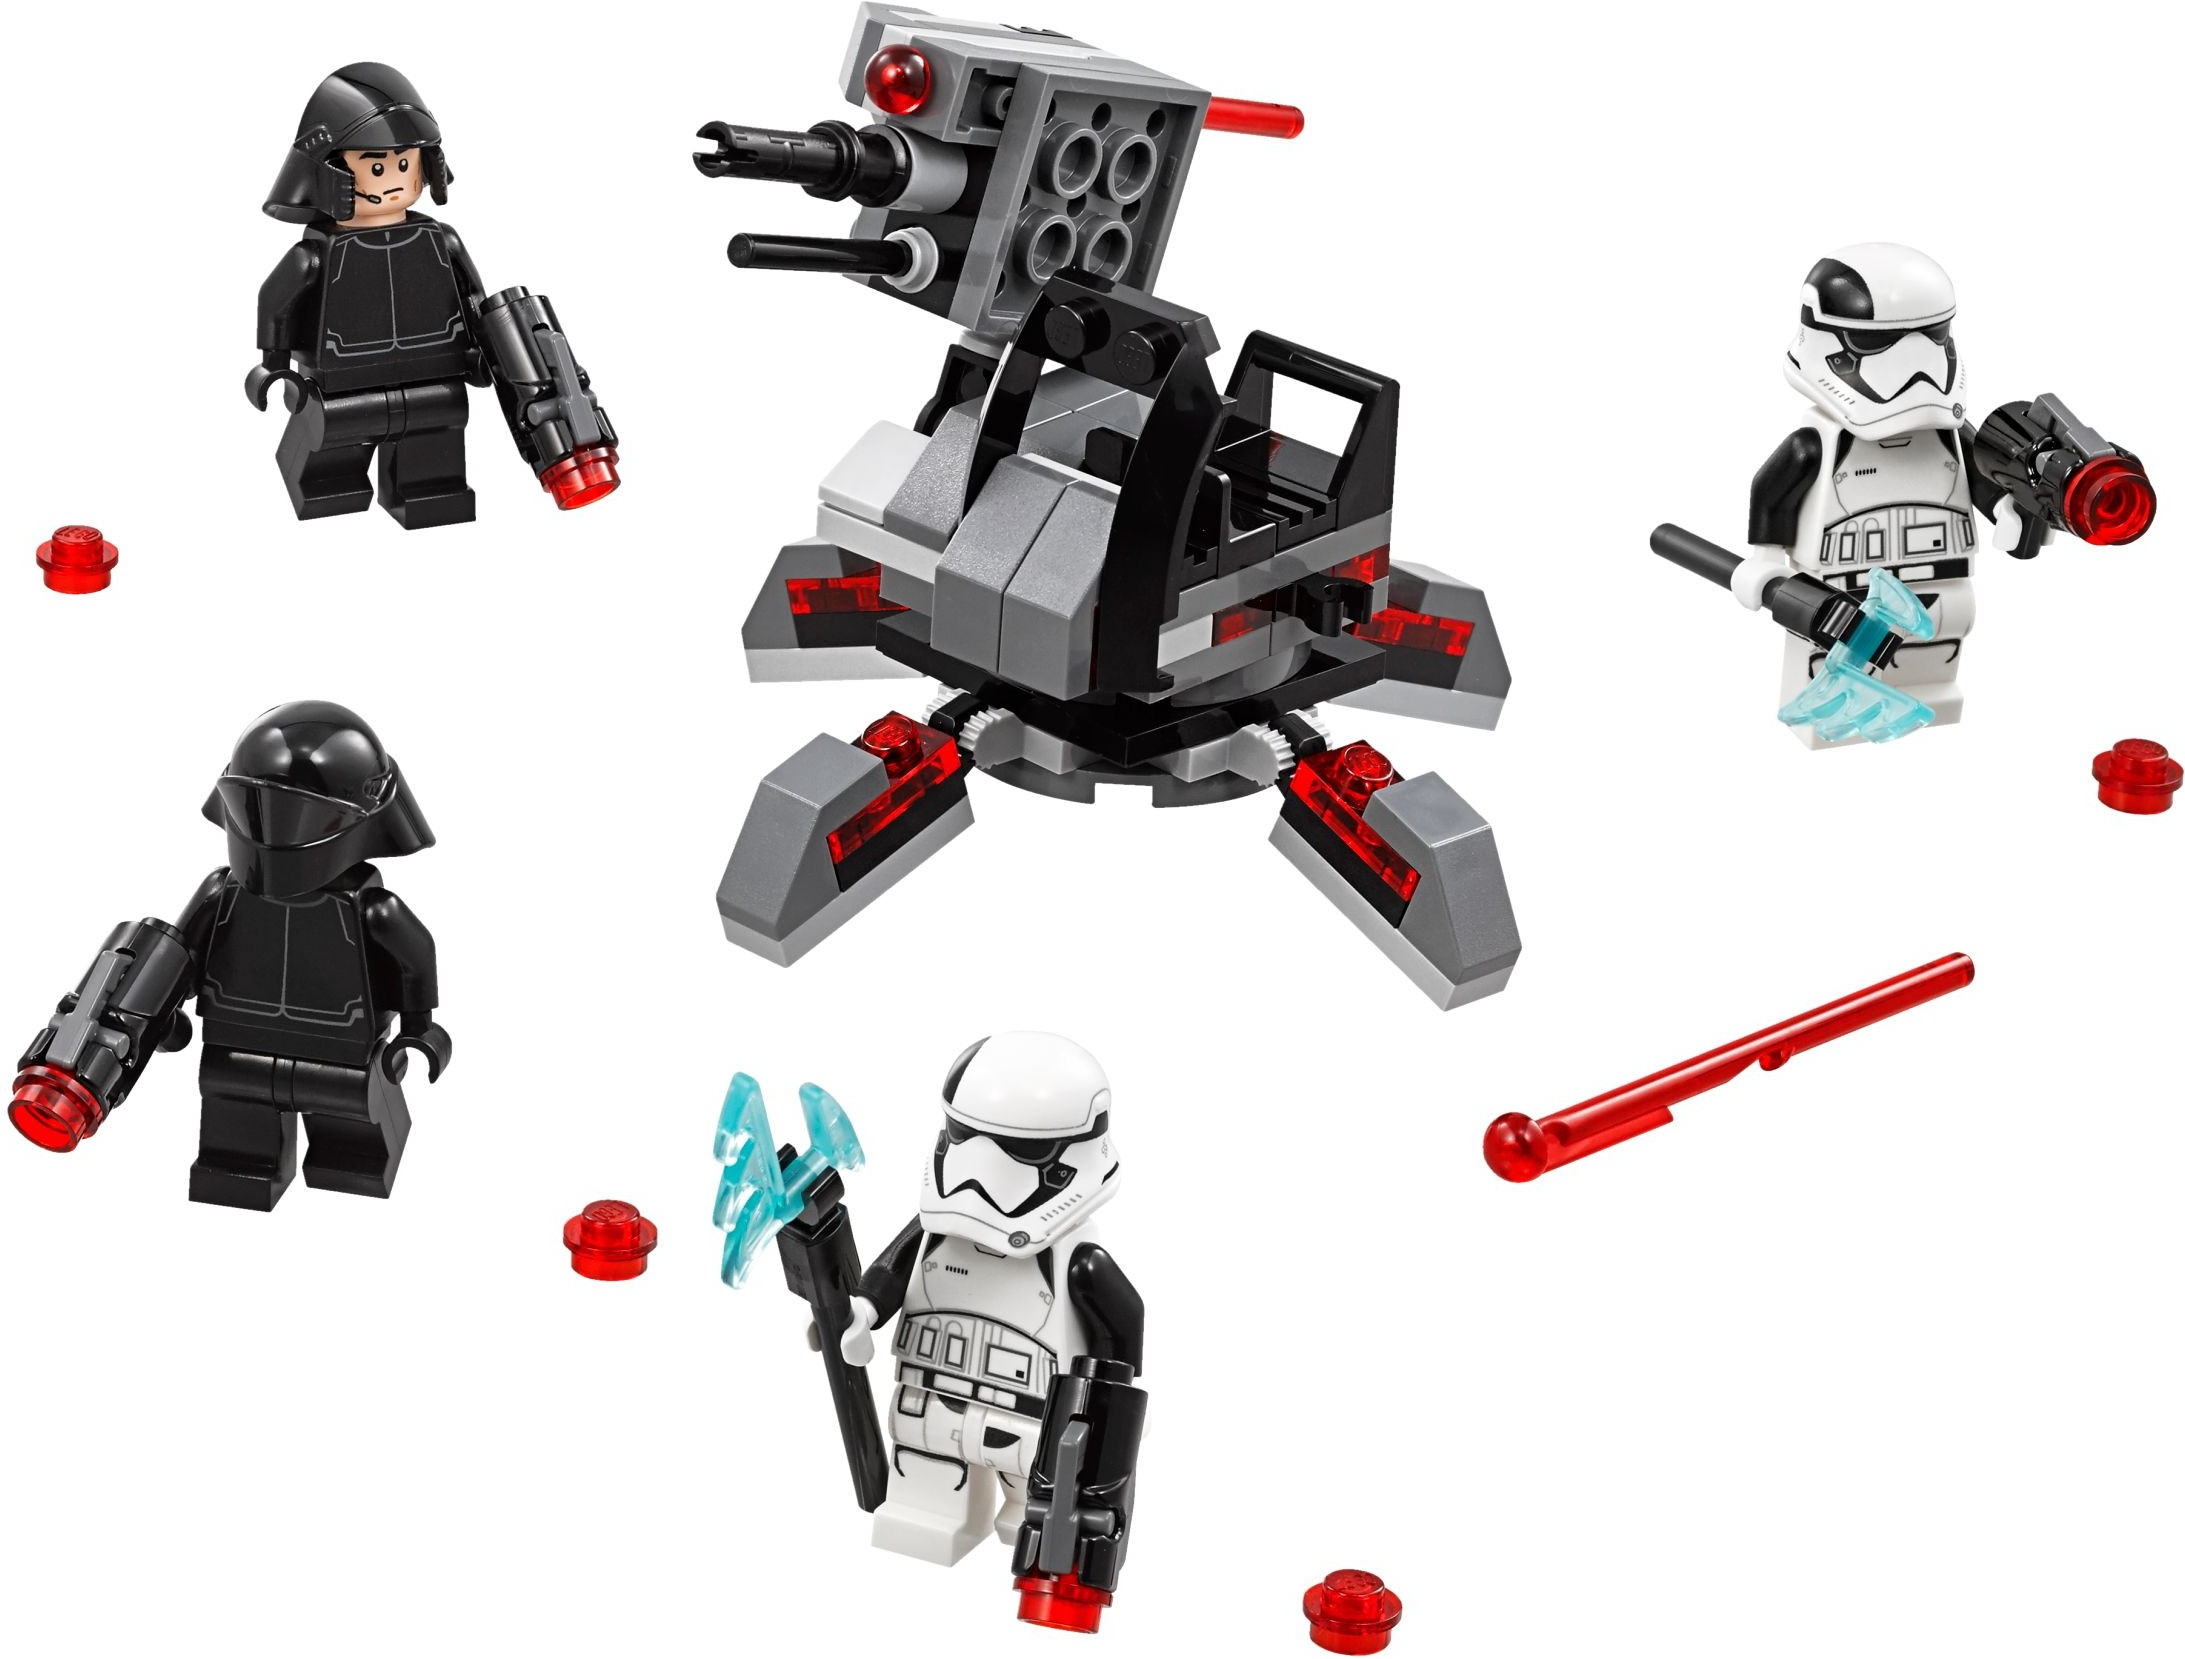 lego star wars set instructions